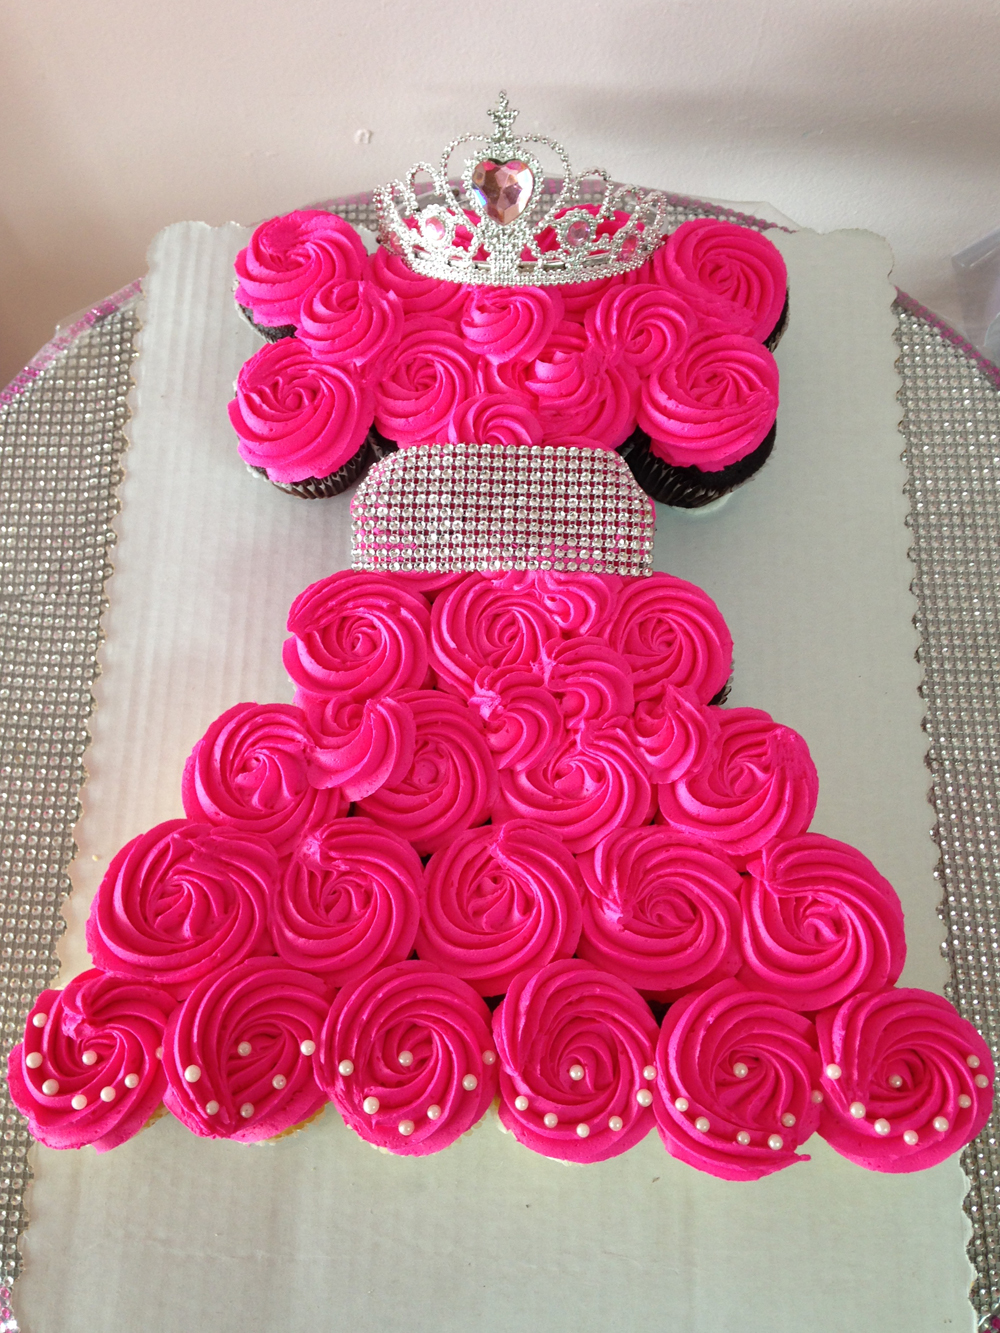 Newest add-on cupcake cake additional